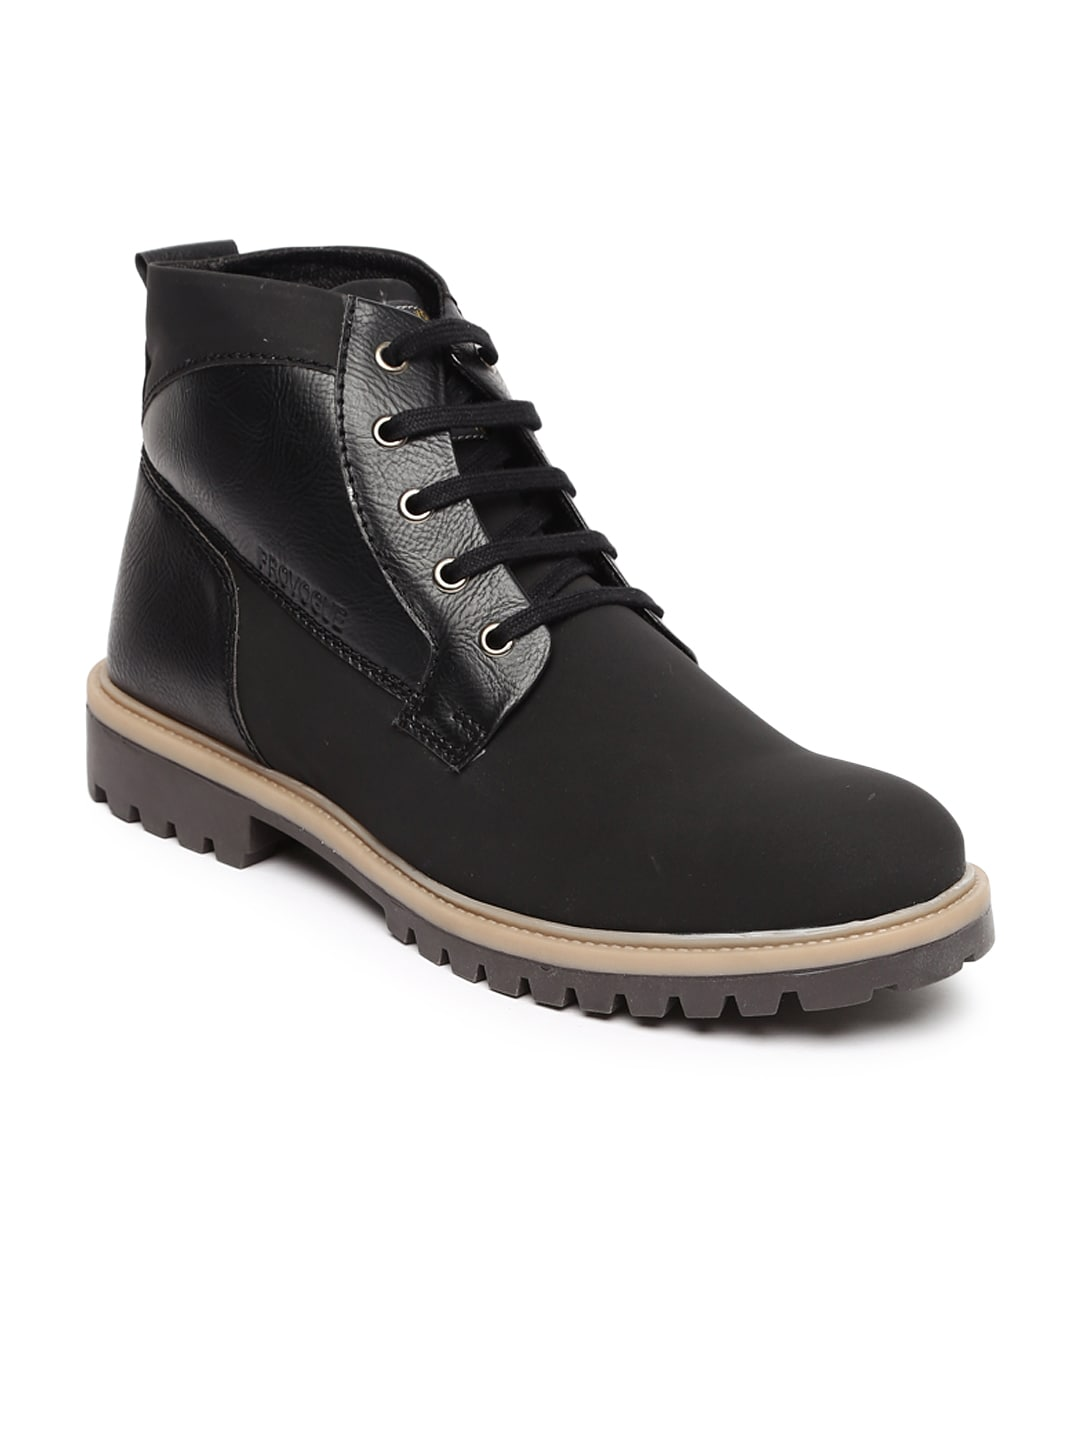 62eb7fbf315176 Provogue - Buy Casual   Formal Shoes from Provogue Online